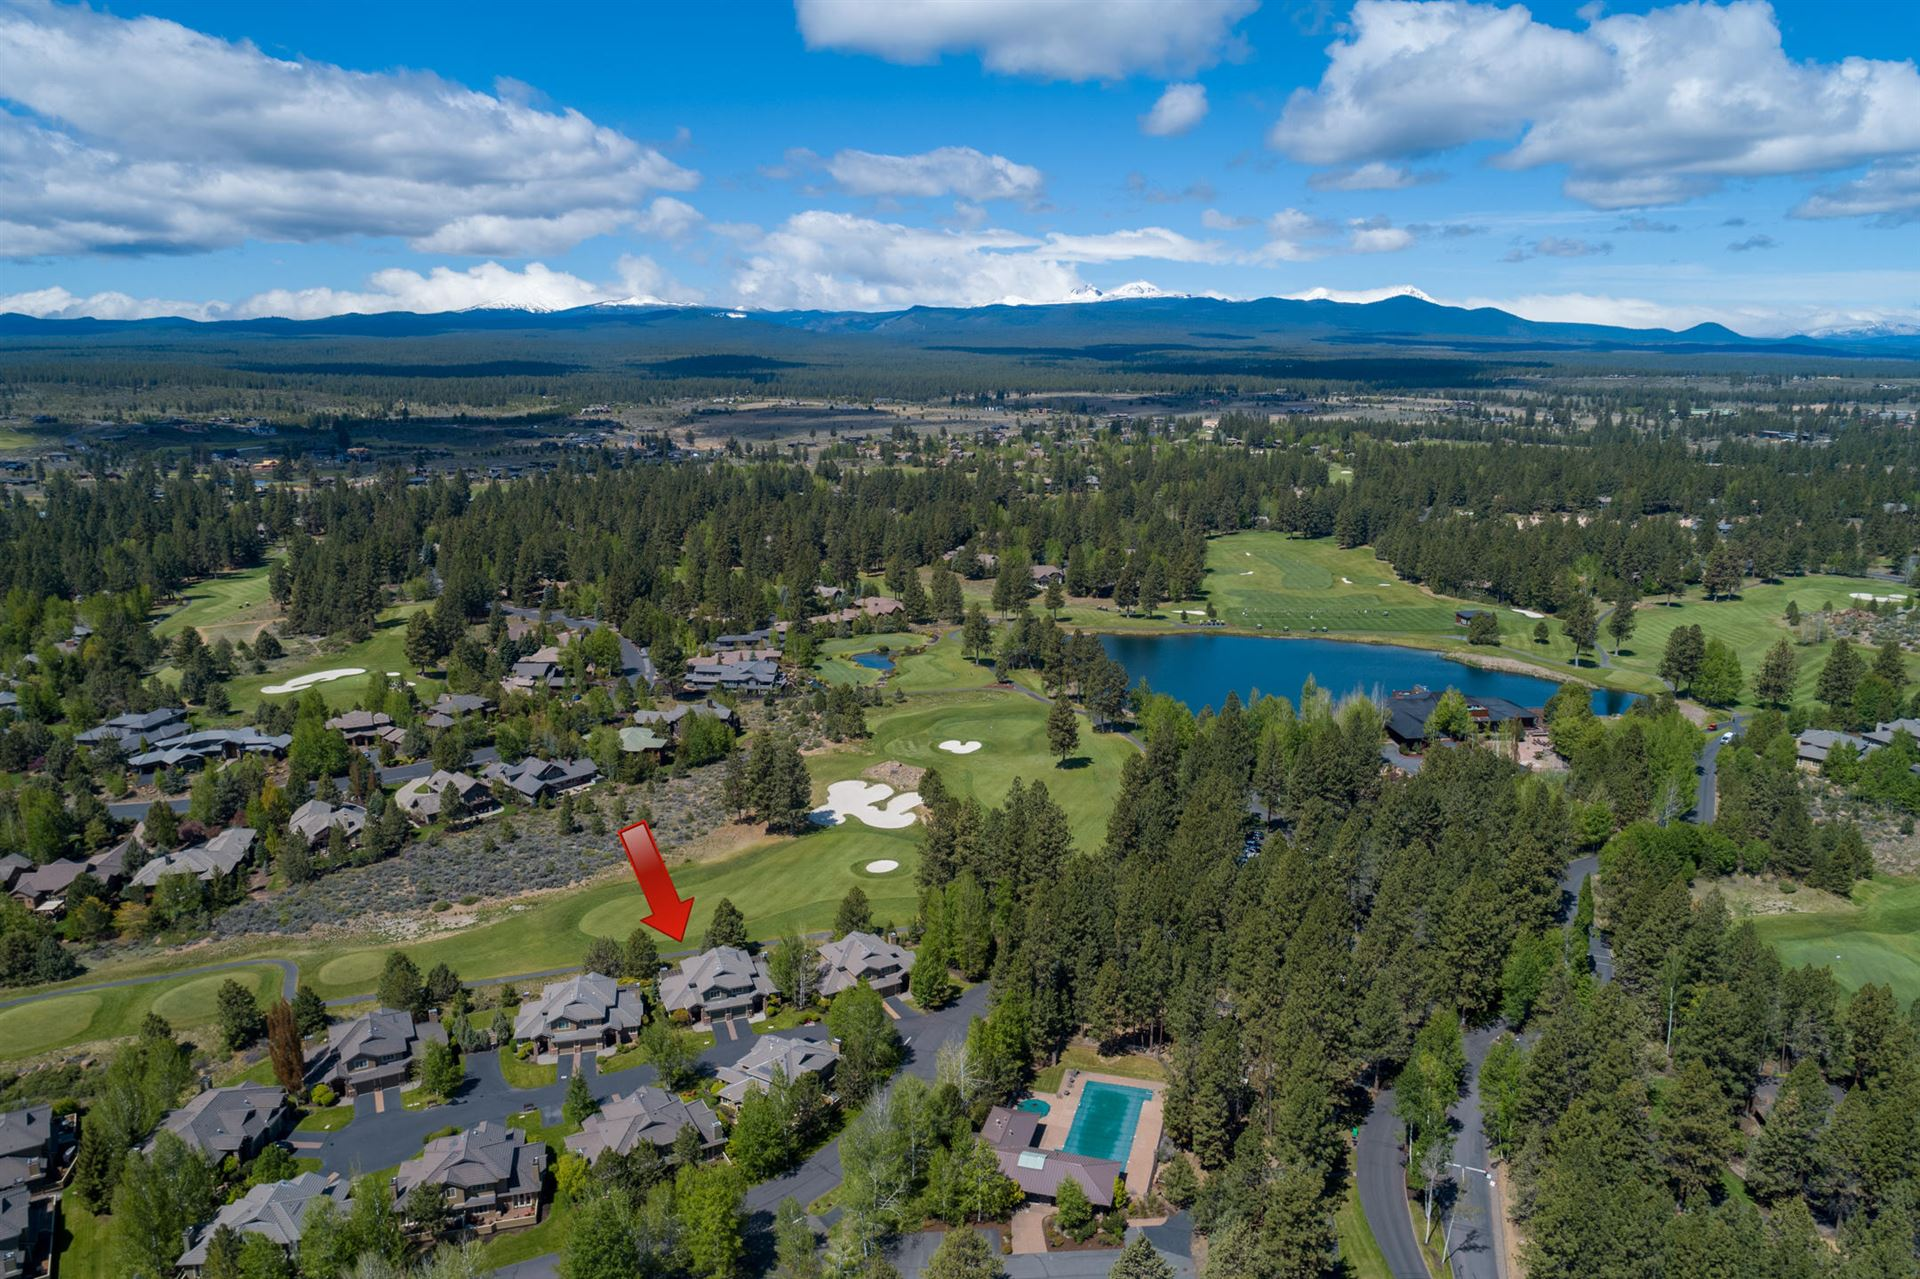 Photo of 61745 Bridge Creek Drive, Bend, OR 97702 (MLS # 220101724)